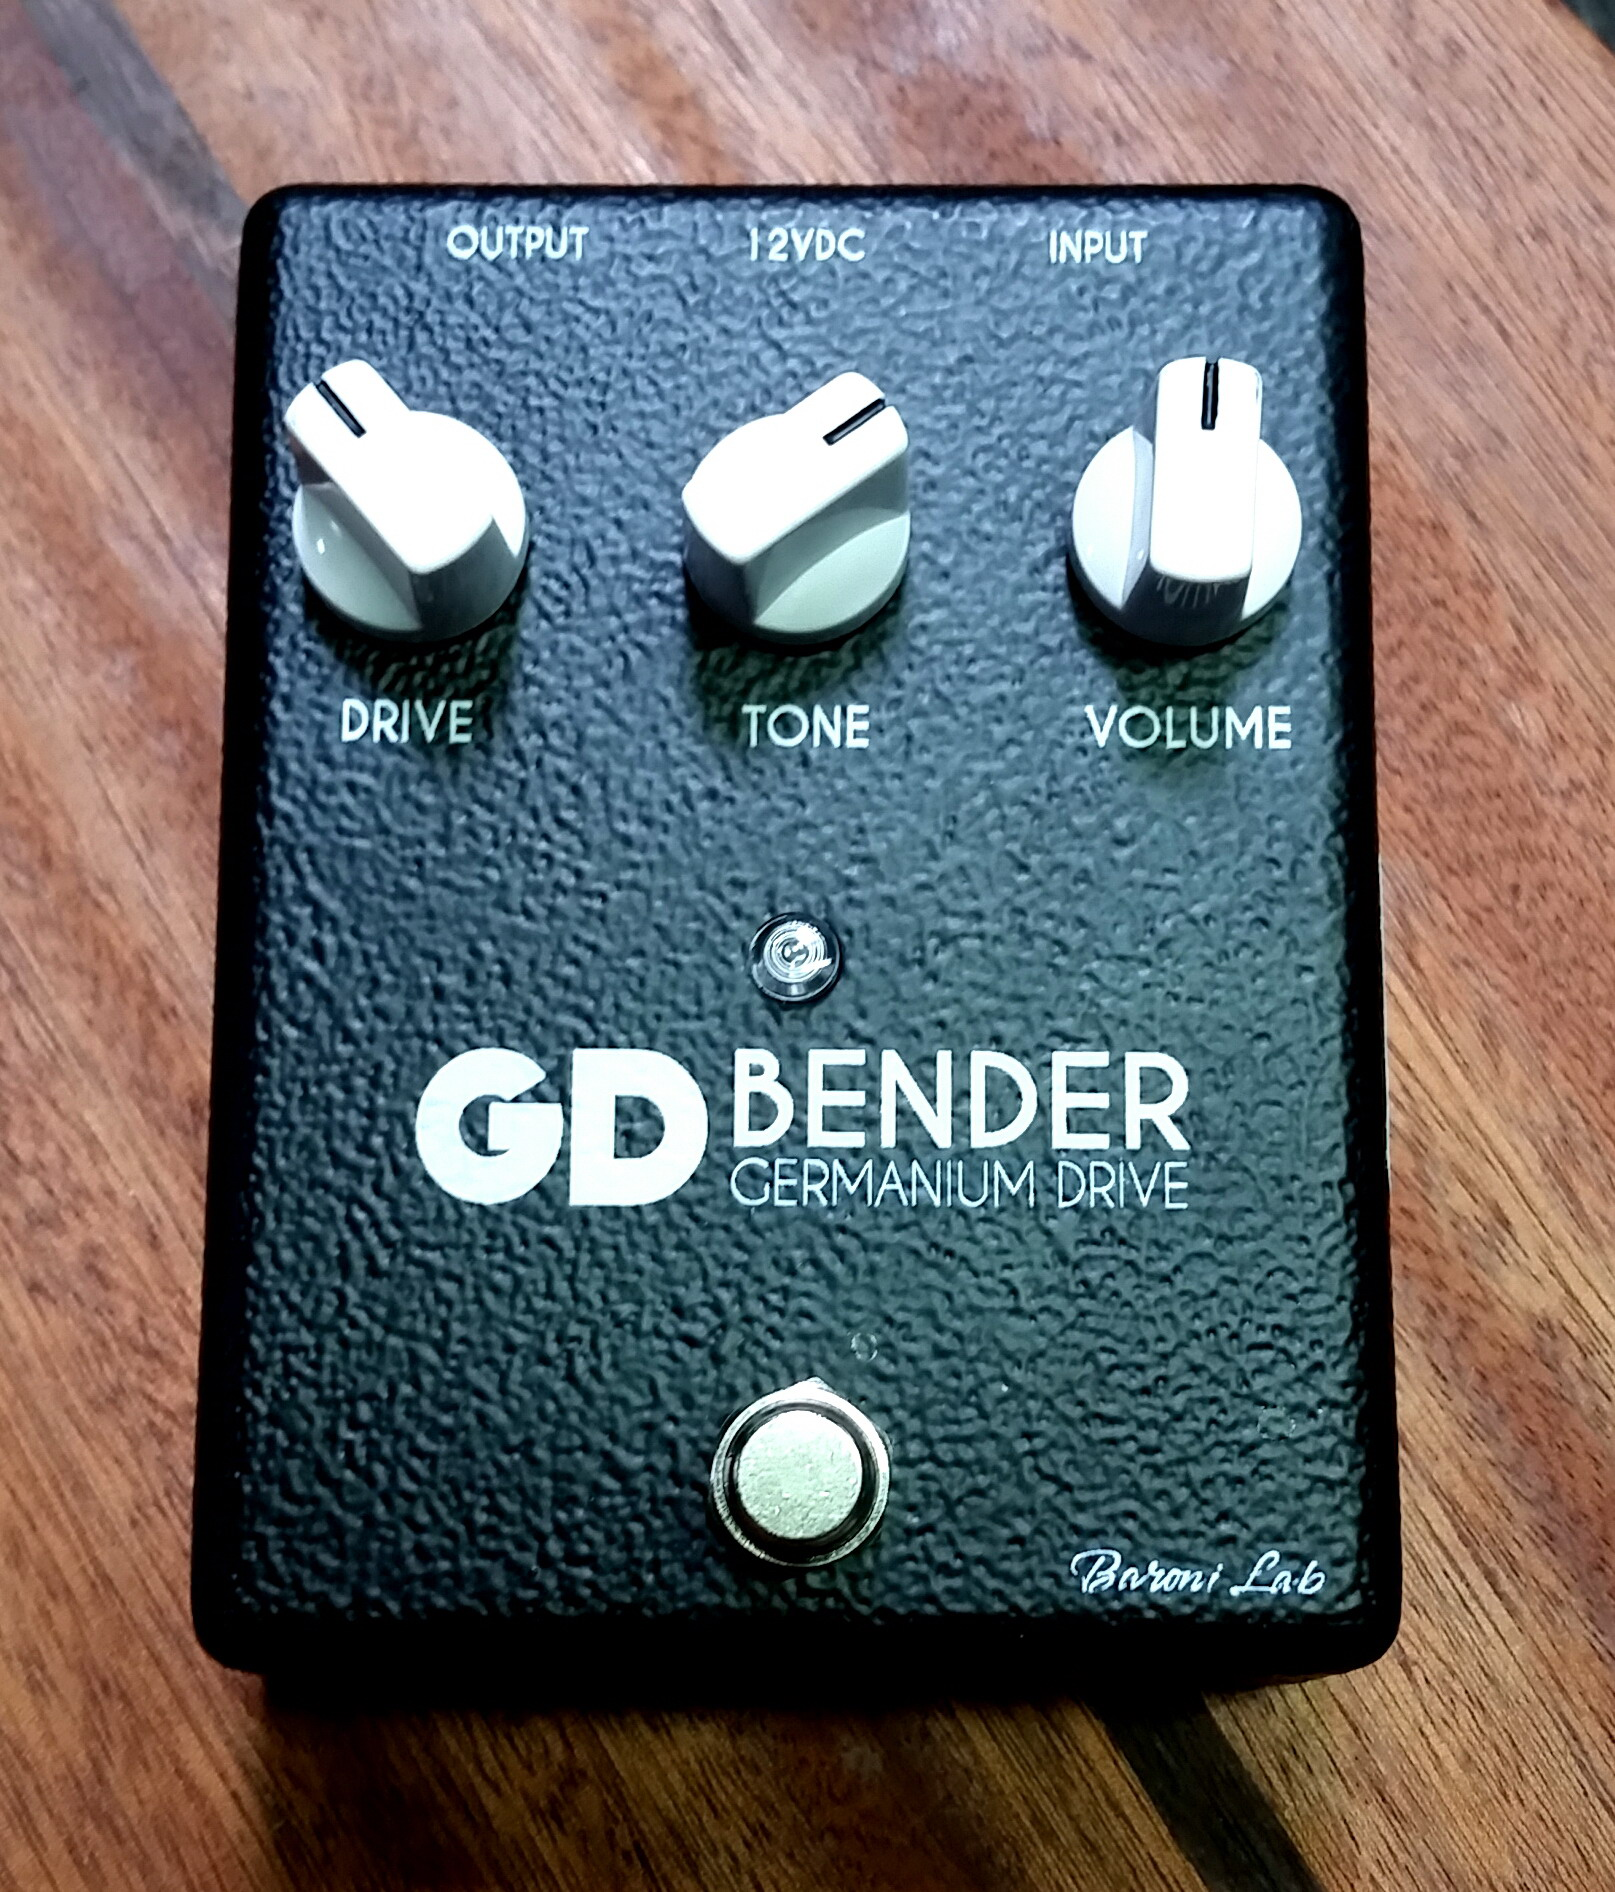 BARONI LAB GD Bender Germanium Drive overdrive pedal